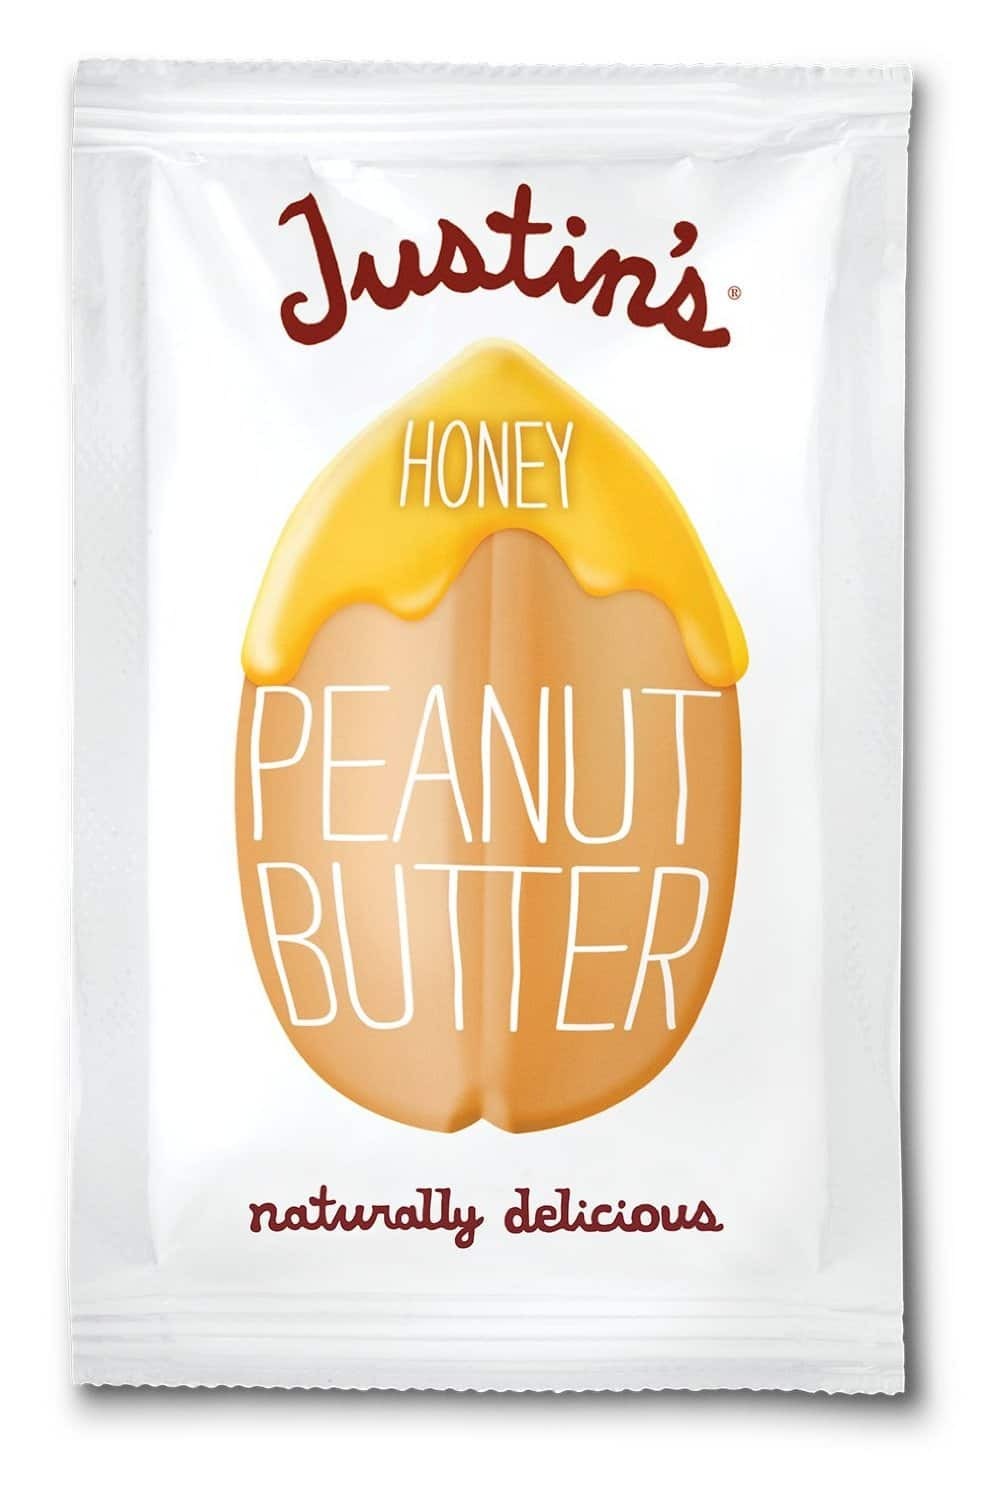 10-Pack 1.15oz. Justin's Honey Organic Peanut Butter Squeeze Packs $3.23 or Less + Free Shipping Amazon.com